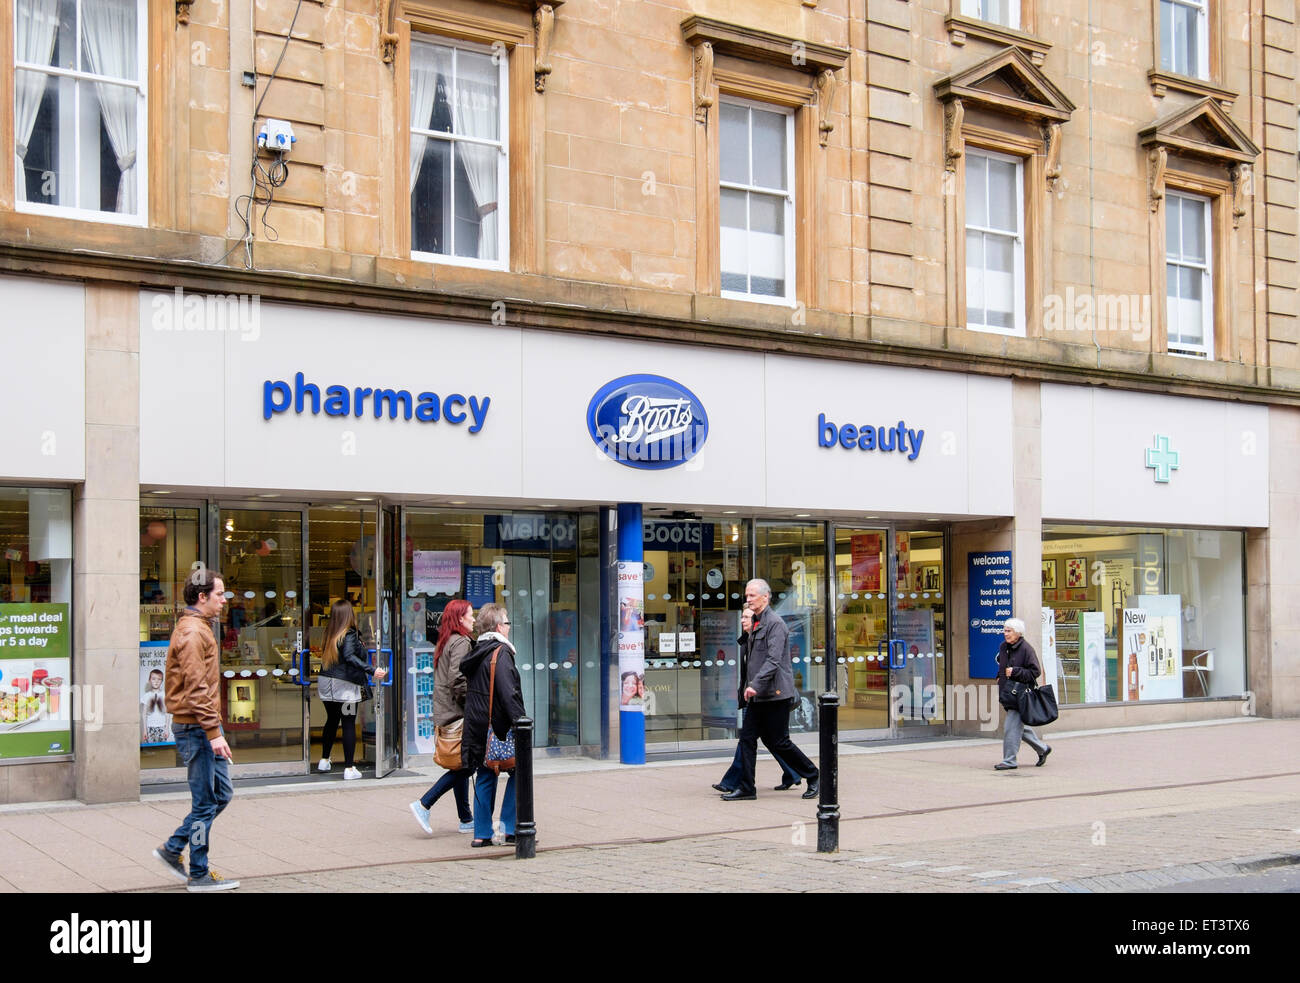 Boots pharmacy chemist store shop front with shoppers passing outside on High Street, Ayr, Ayrshire, Scotland, UK, - Stock Image